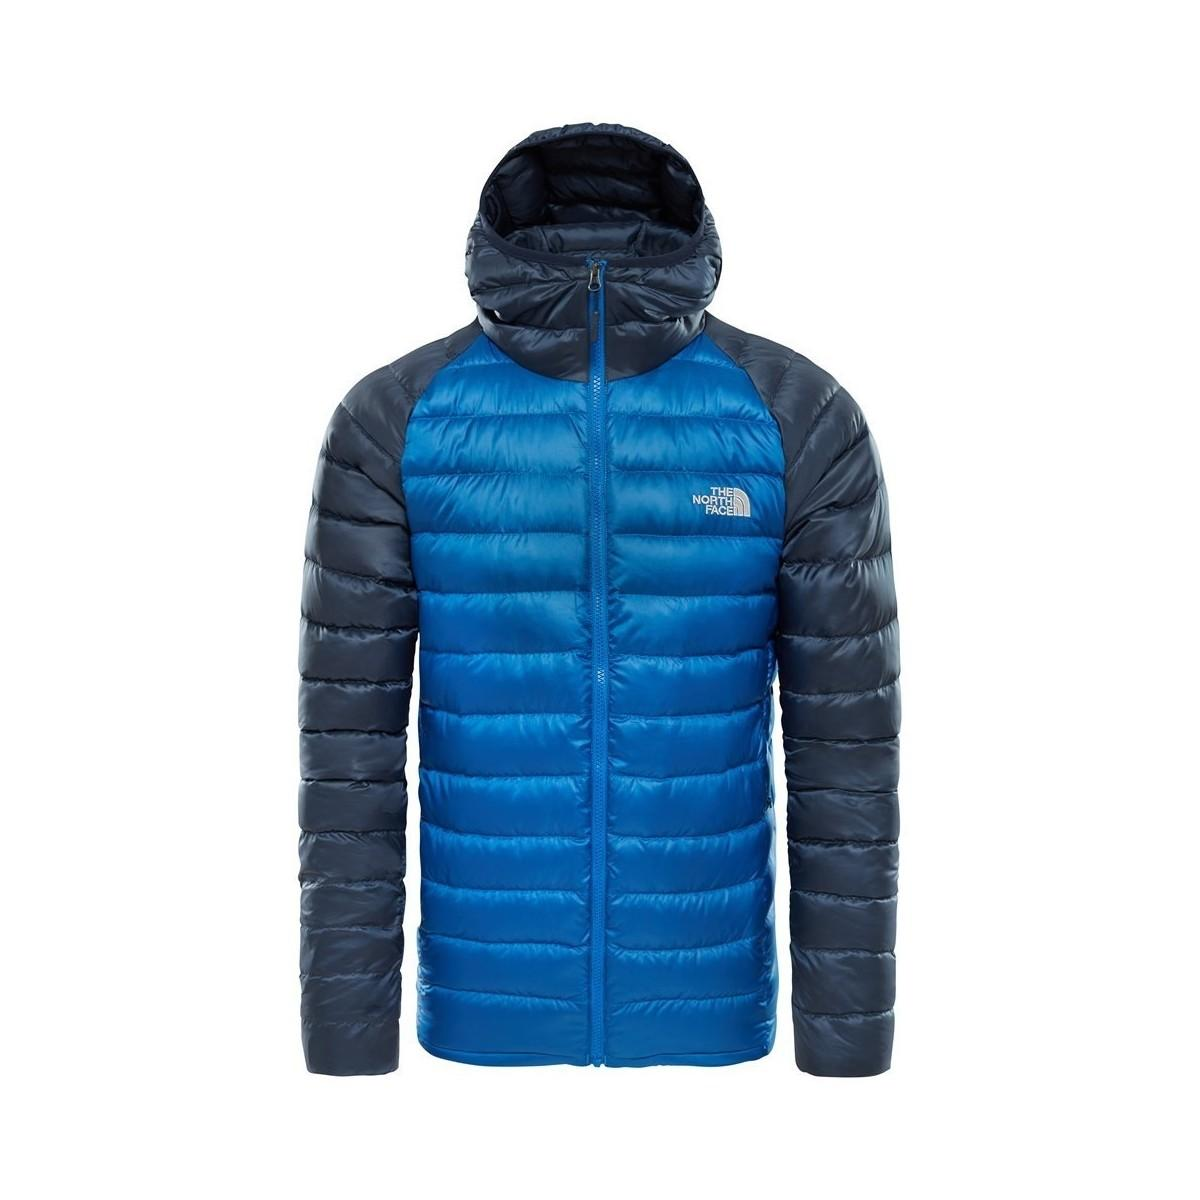 158a833127 The North Face Trevail Hoodie Turkish Seau Men's Jacket In Blue in ...